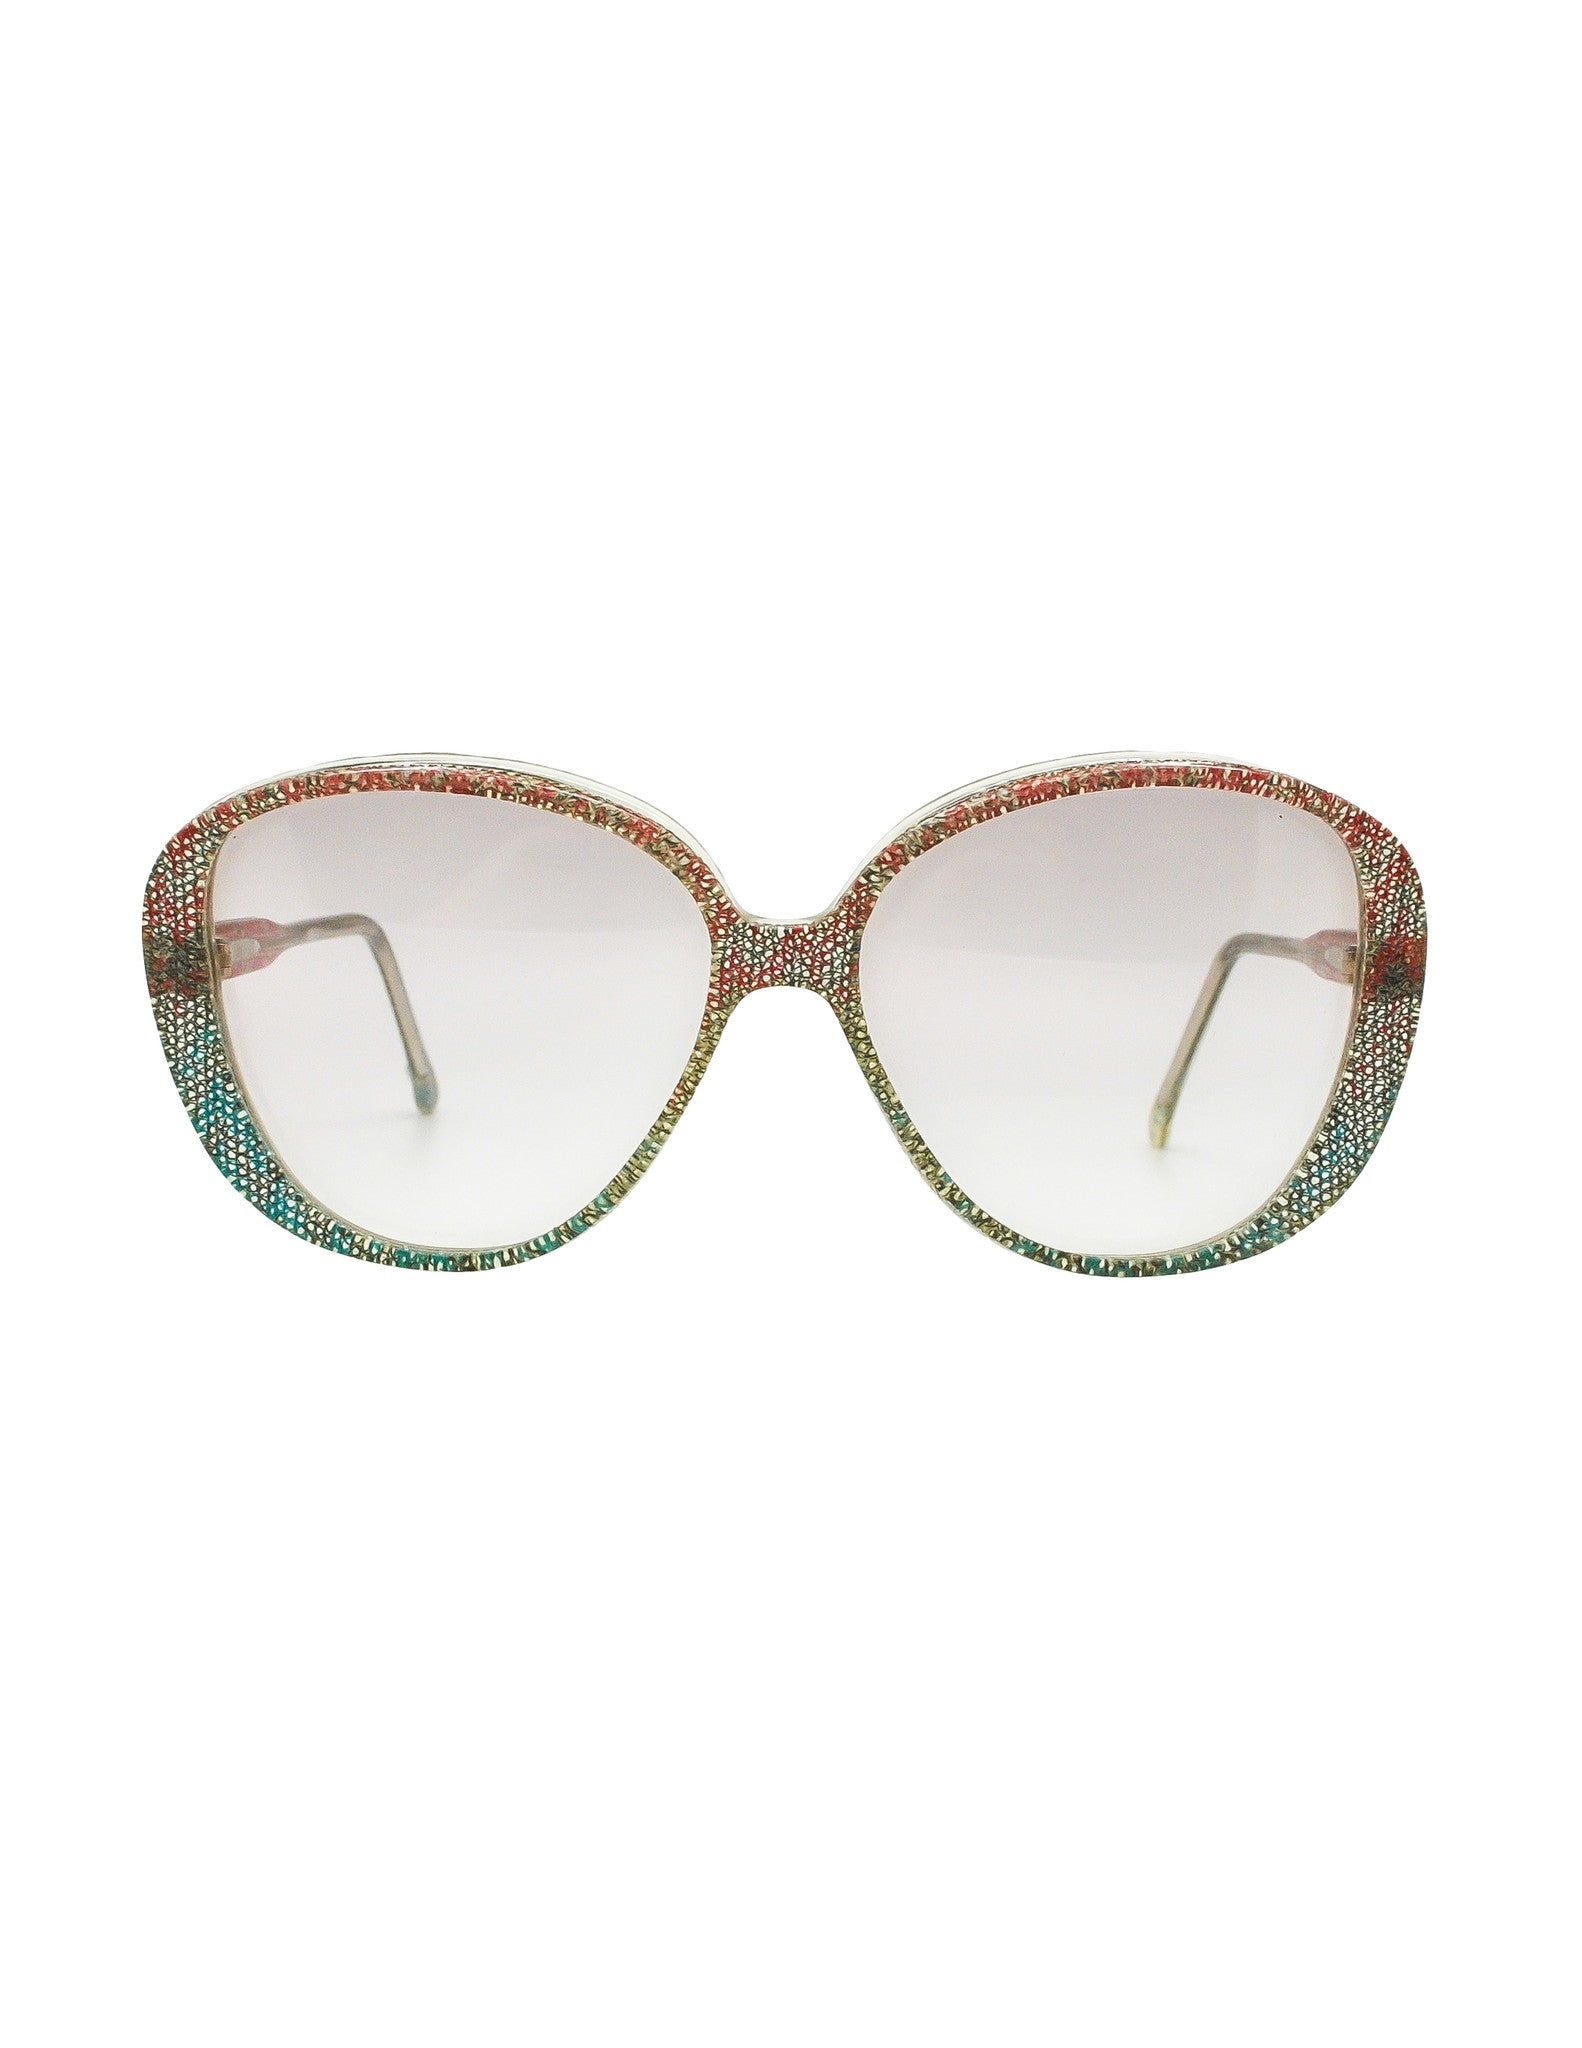 Missoni Vintage Pastel Lace Sunglasses - Amarcord Vintage Fashion  - 1